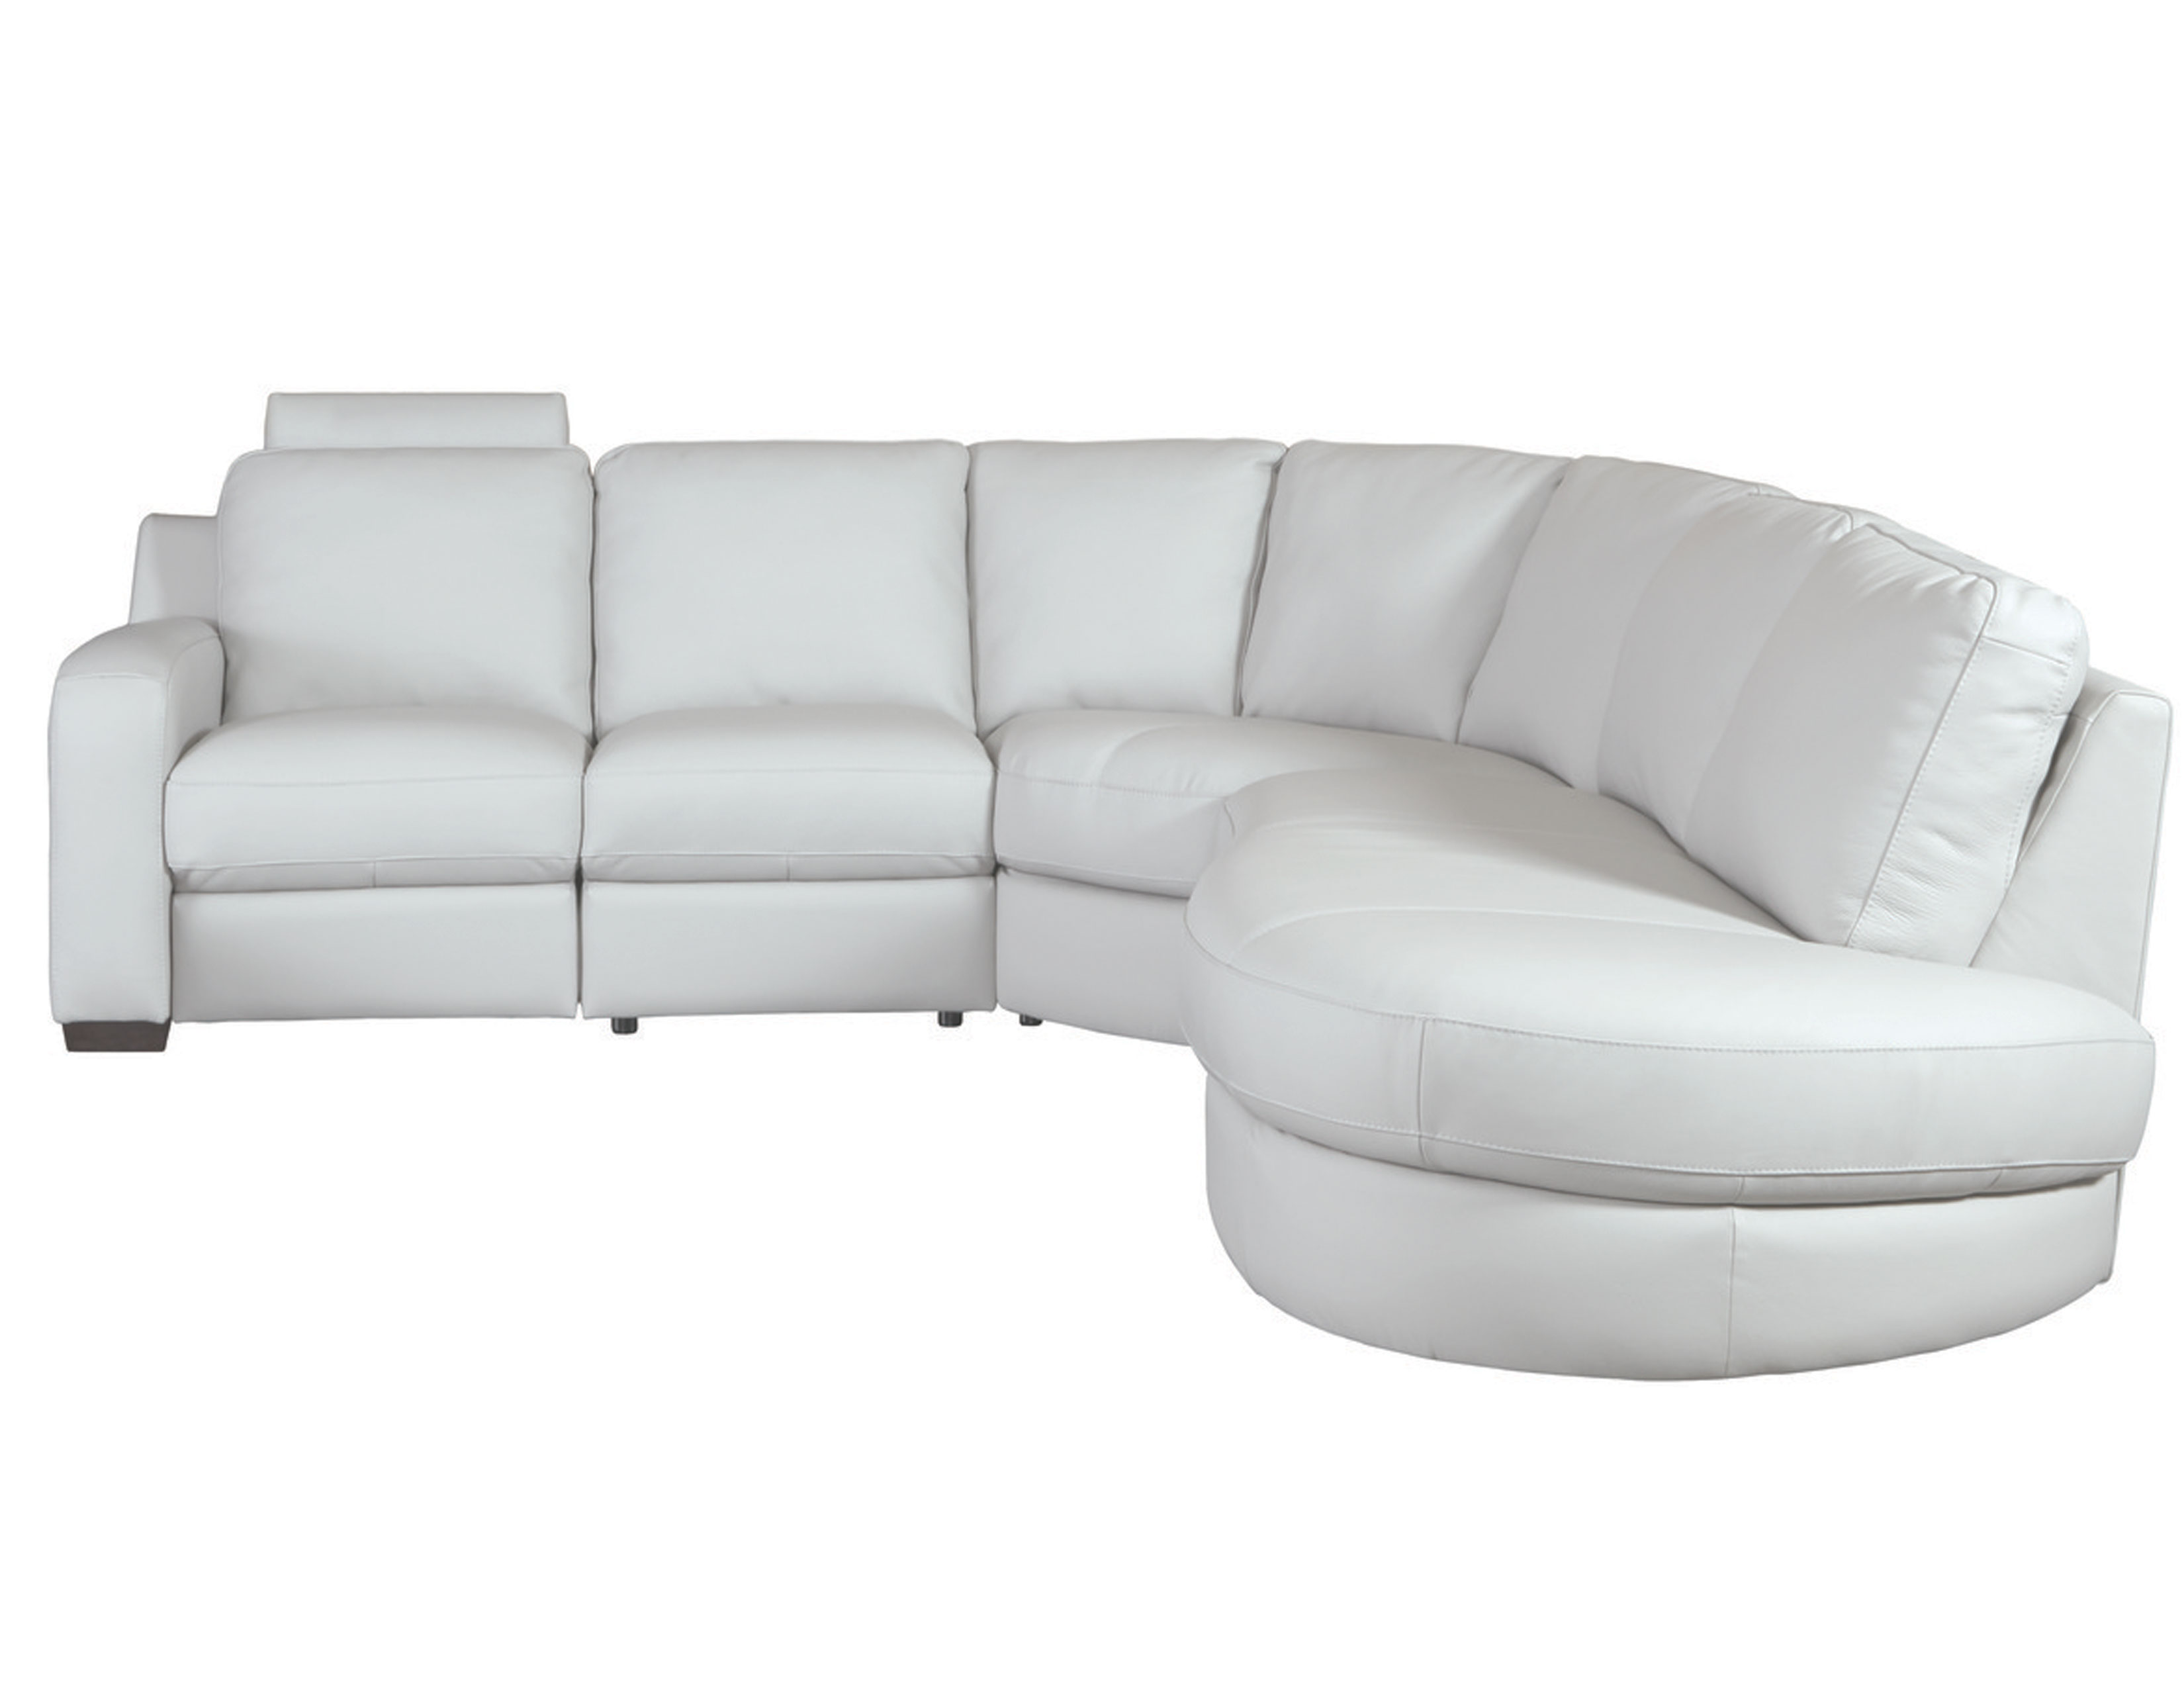 Awe Inspiring Flex 77503 70503 Stationary Or Power Sofas And Sectionals Unemploymentrelief Wooden Chair Designs For Living Room Unemploymentrelieforg